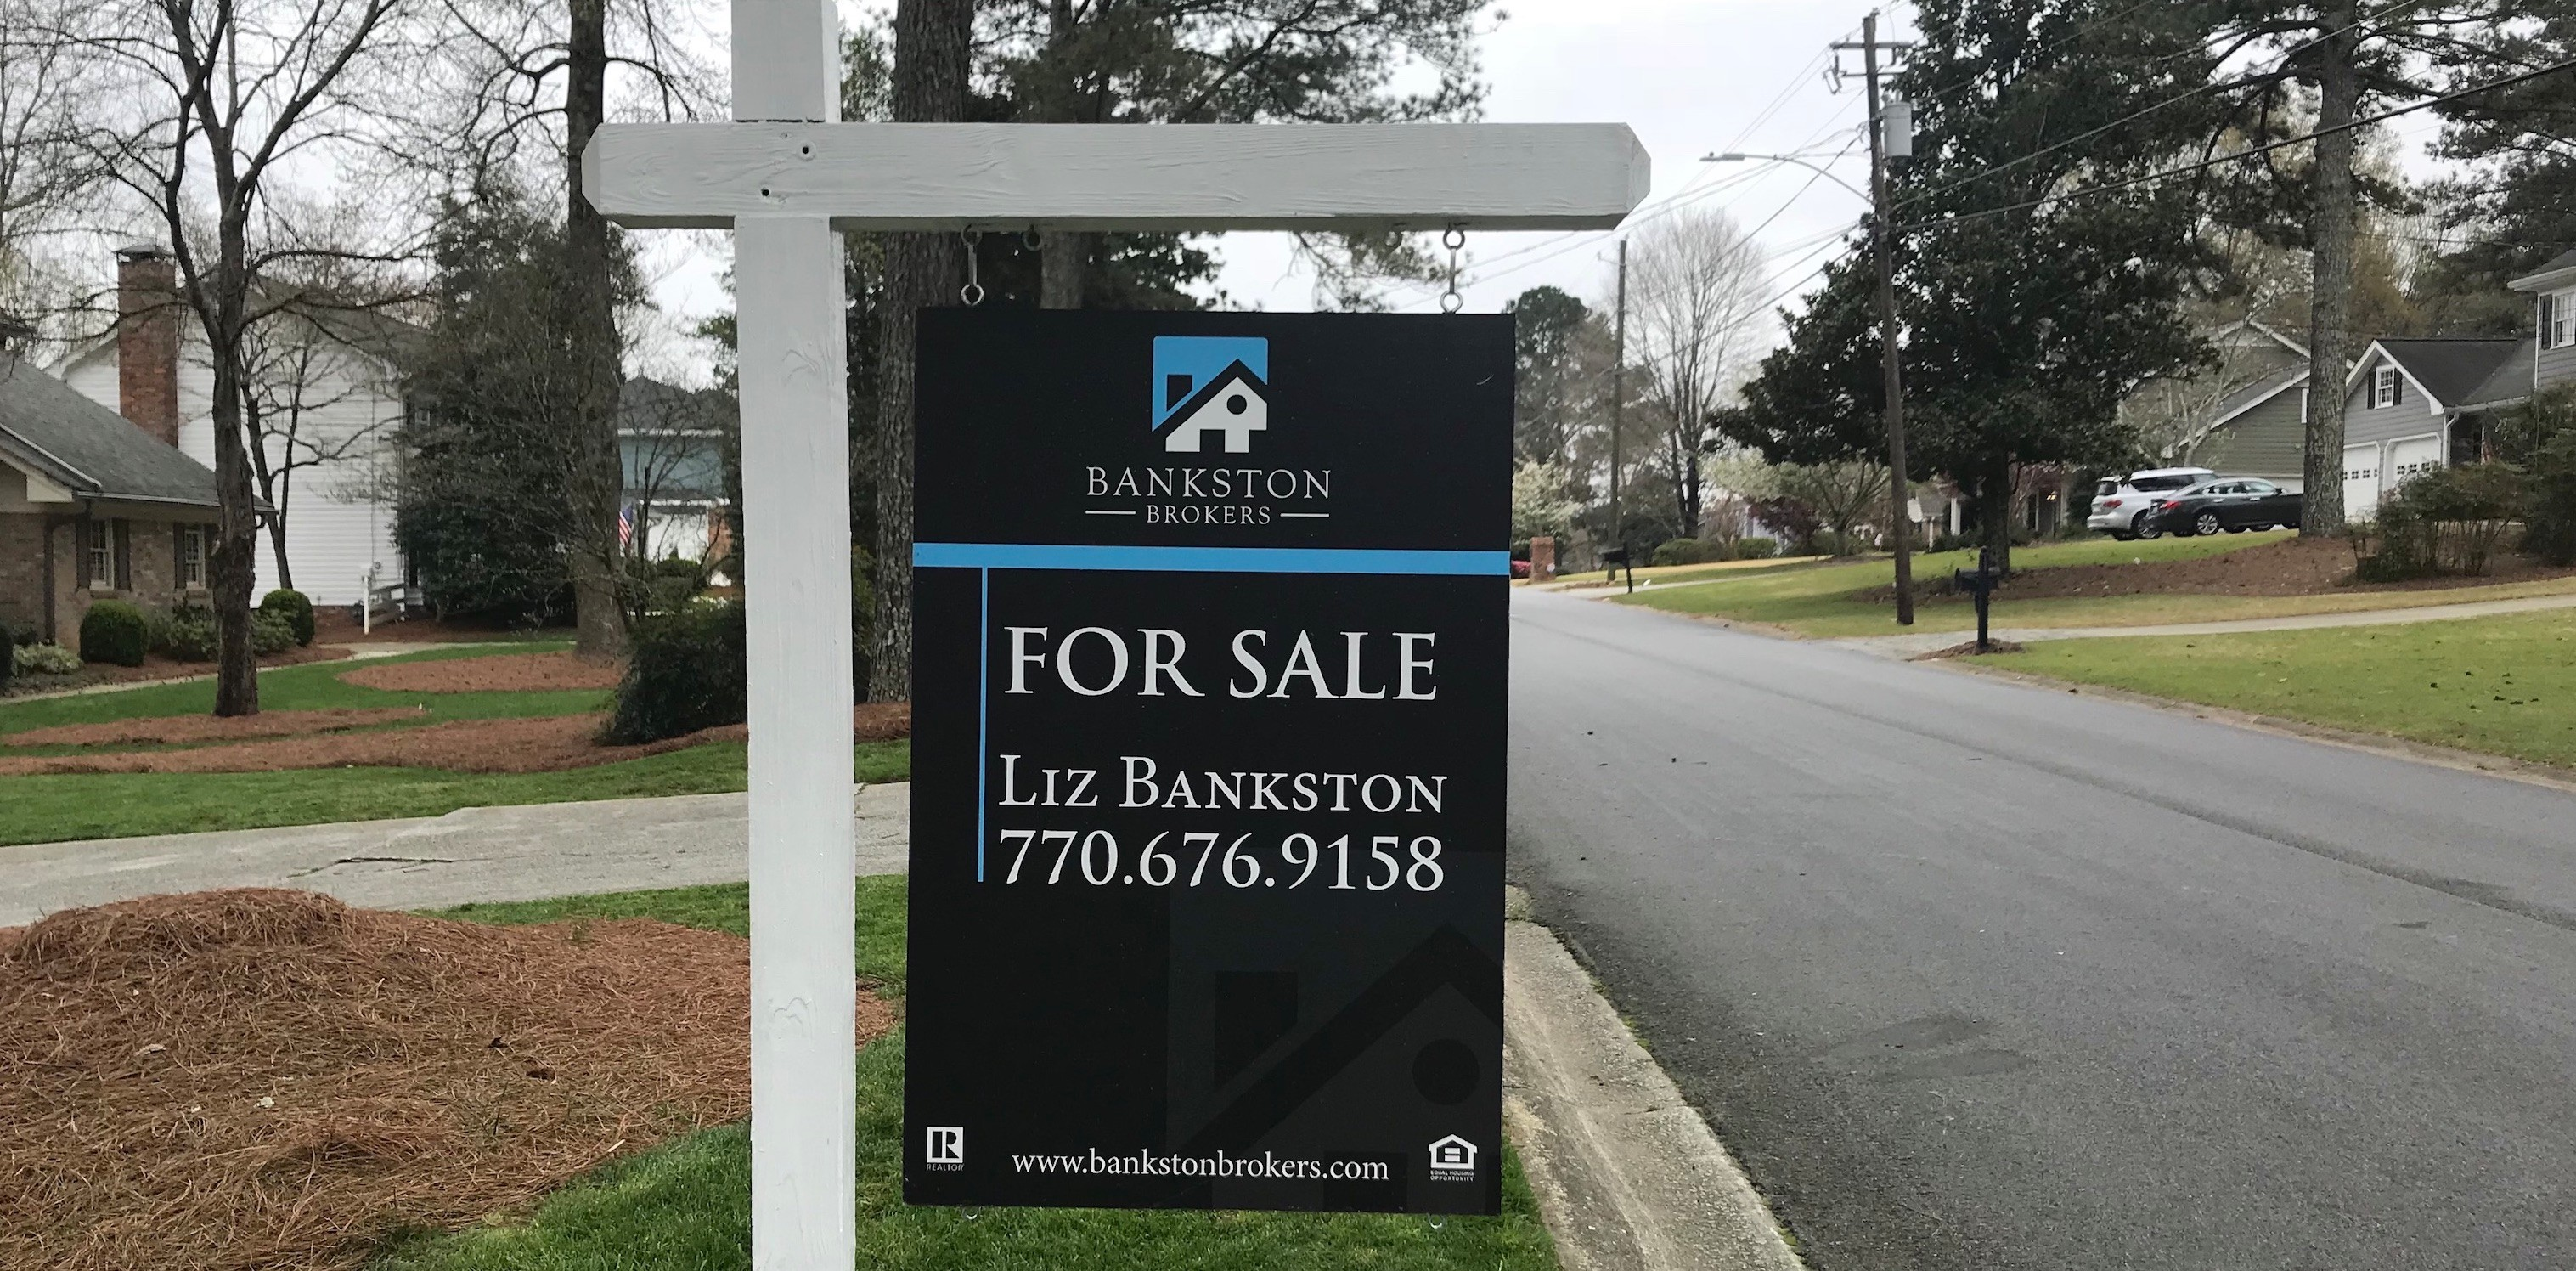 Bankston Brokers Coming Soon